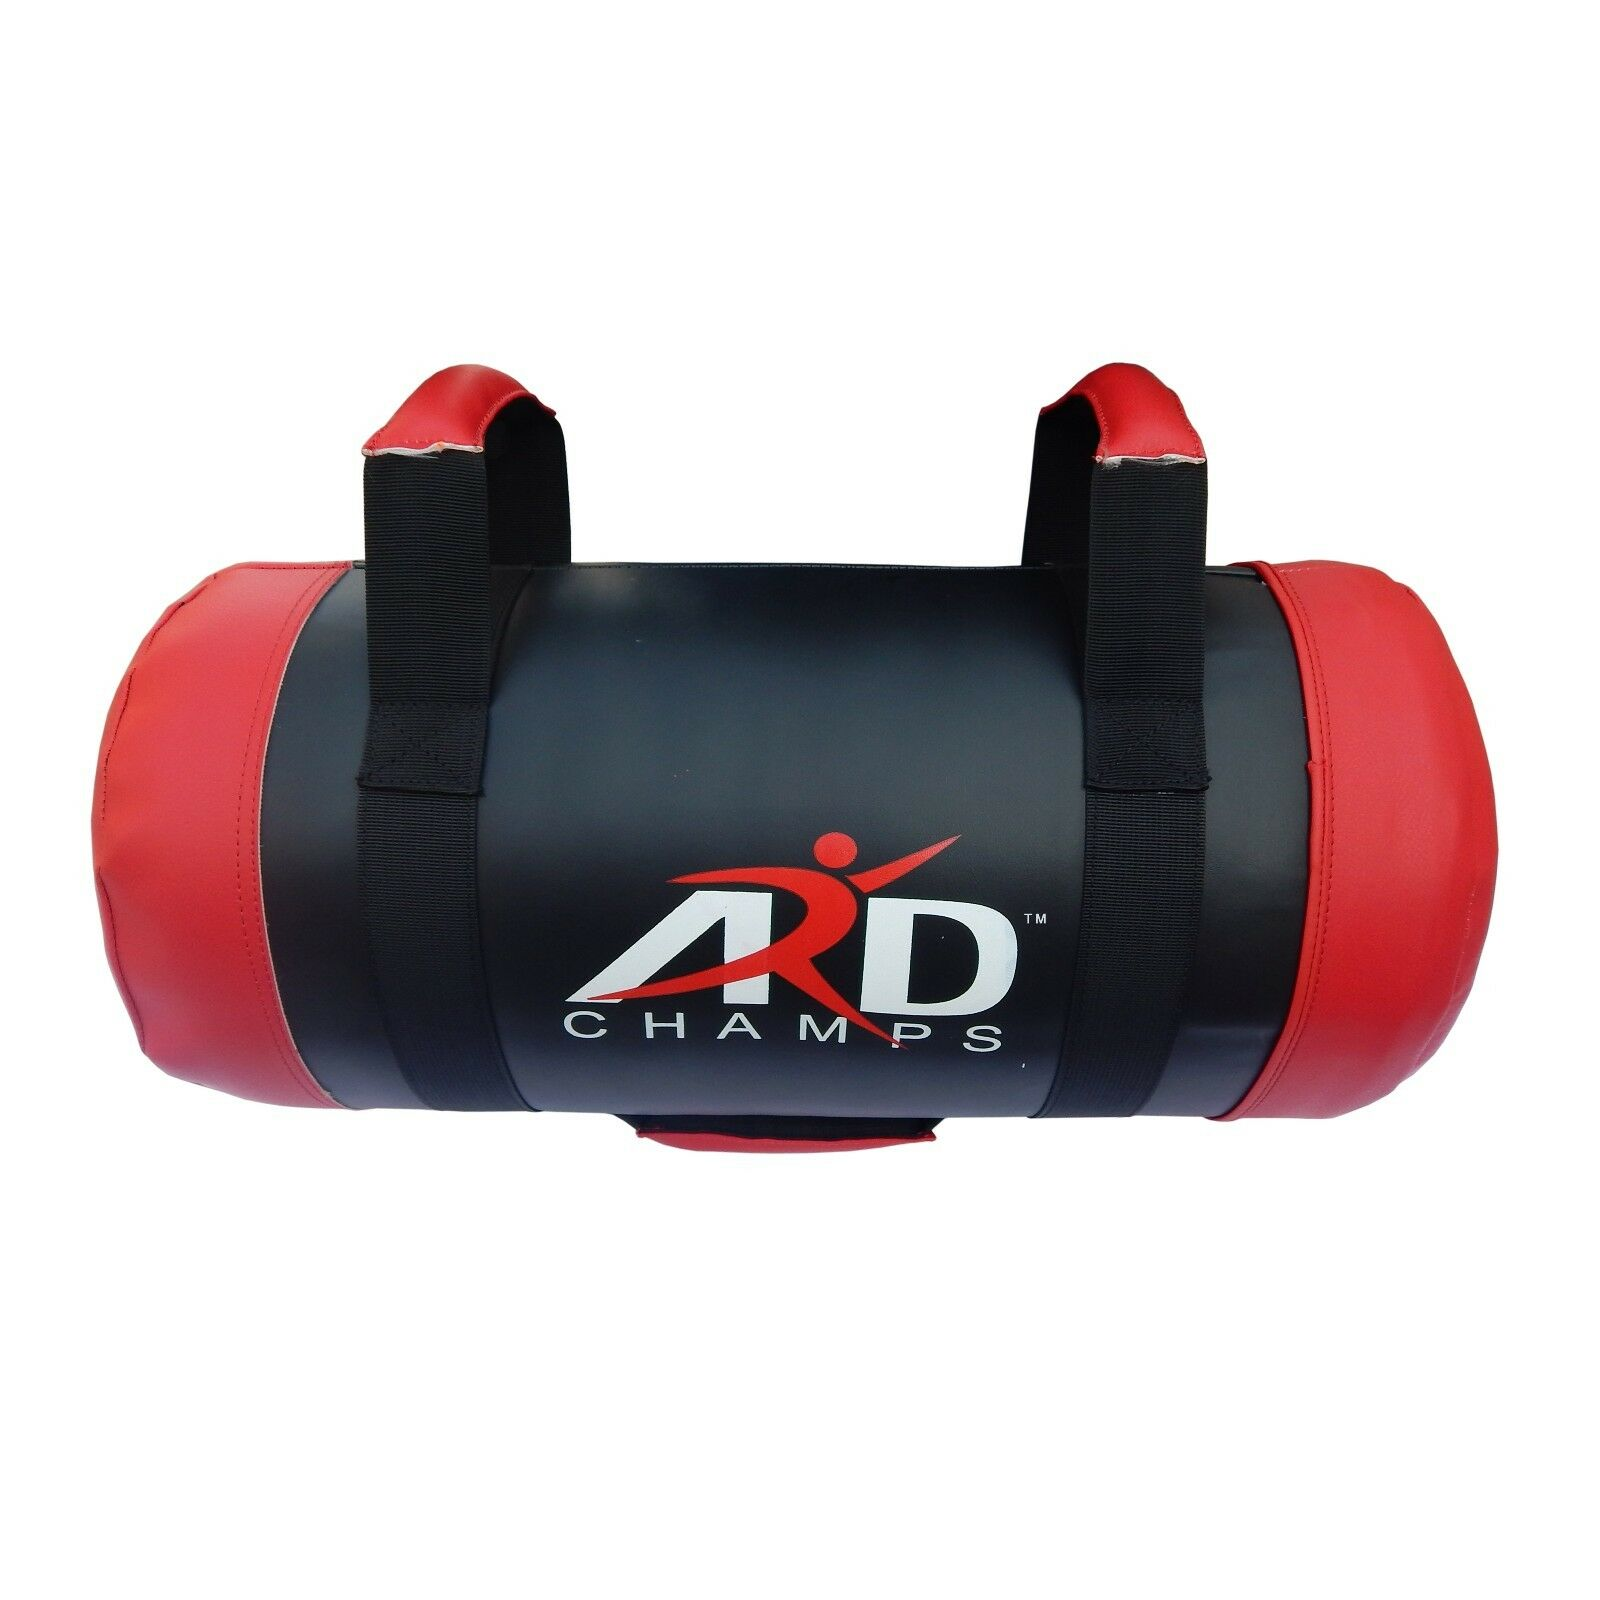 2Fit™ Weighted Power Sand Bag  Training Workout Strength Exercise Fitness 10-25Kg  promotions